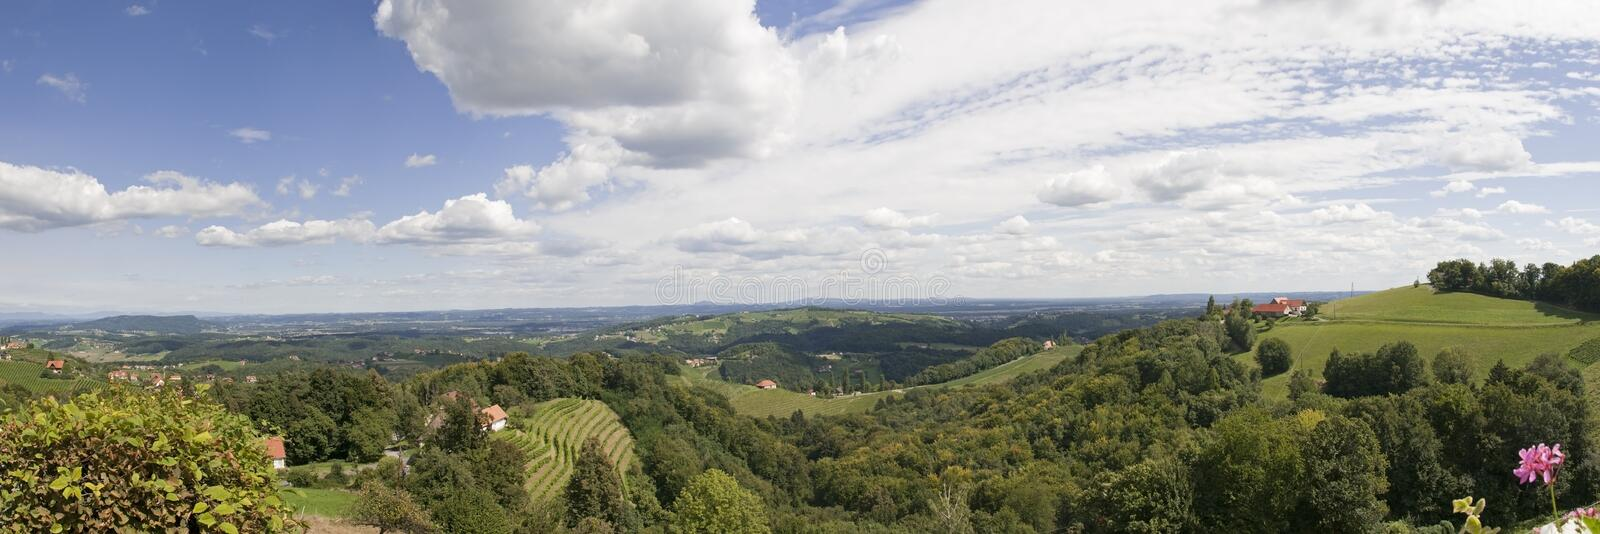 Styria. View from Kitzeck in Styria to Graz on a sunny day stock photography